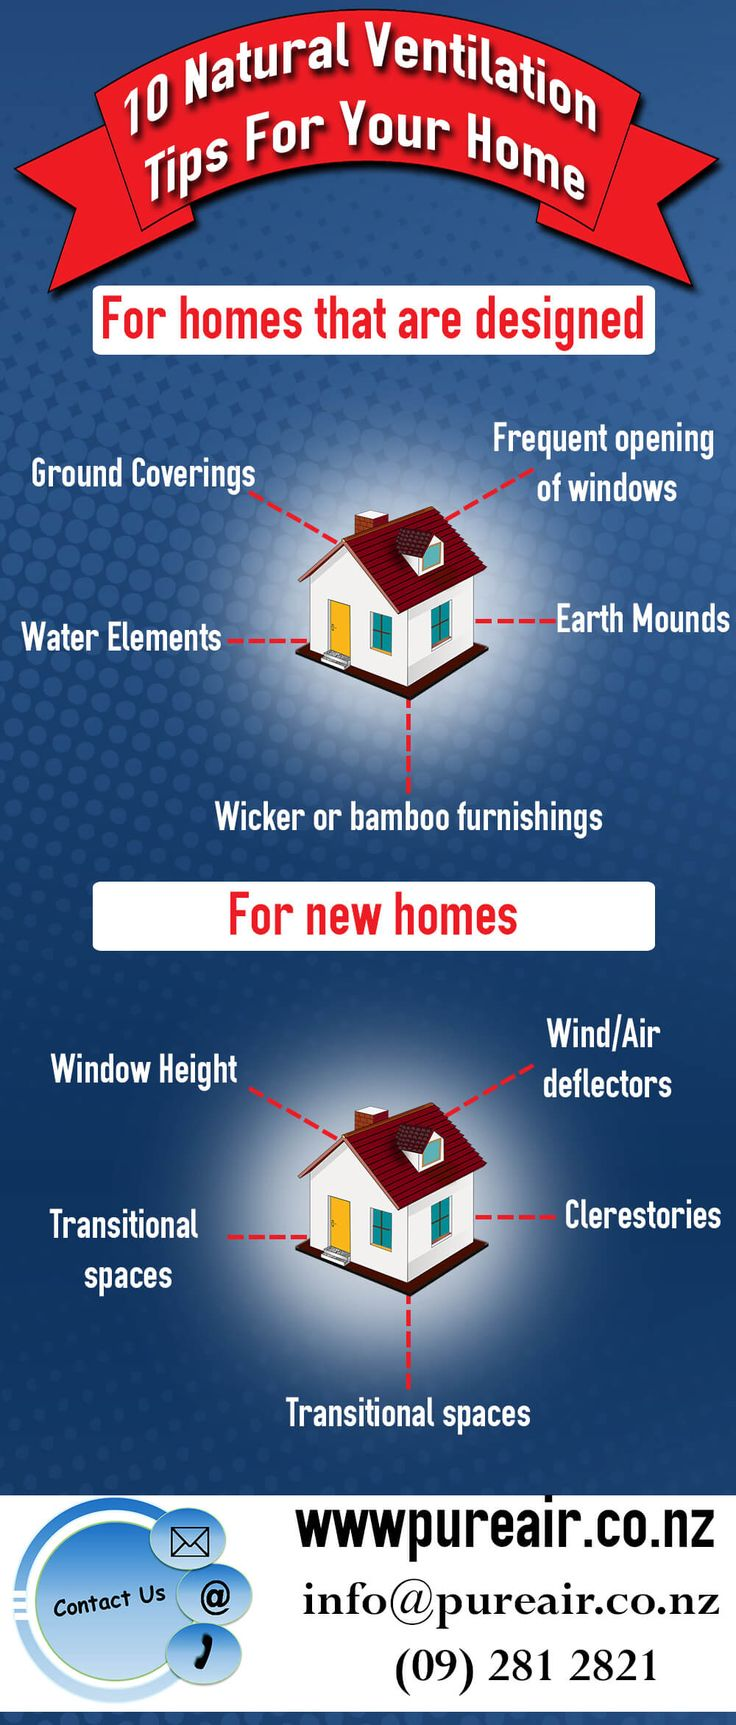 10 Natural Ventilation Tips For Your Home